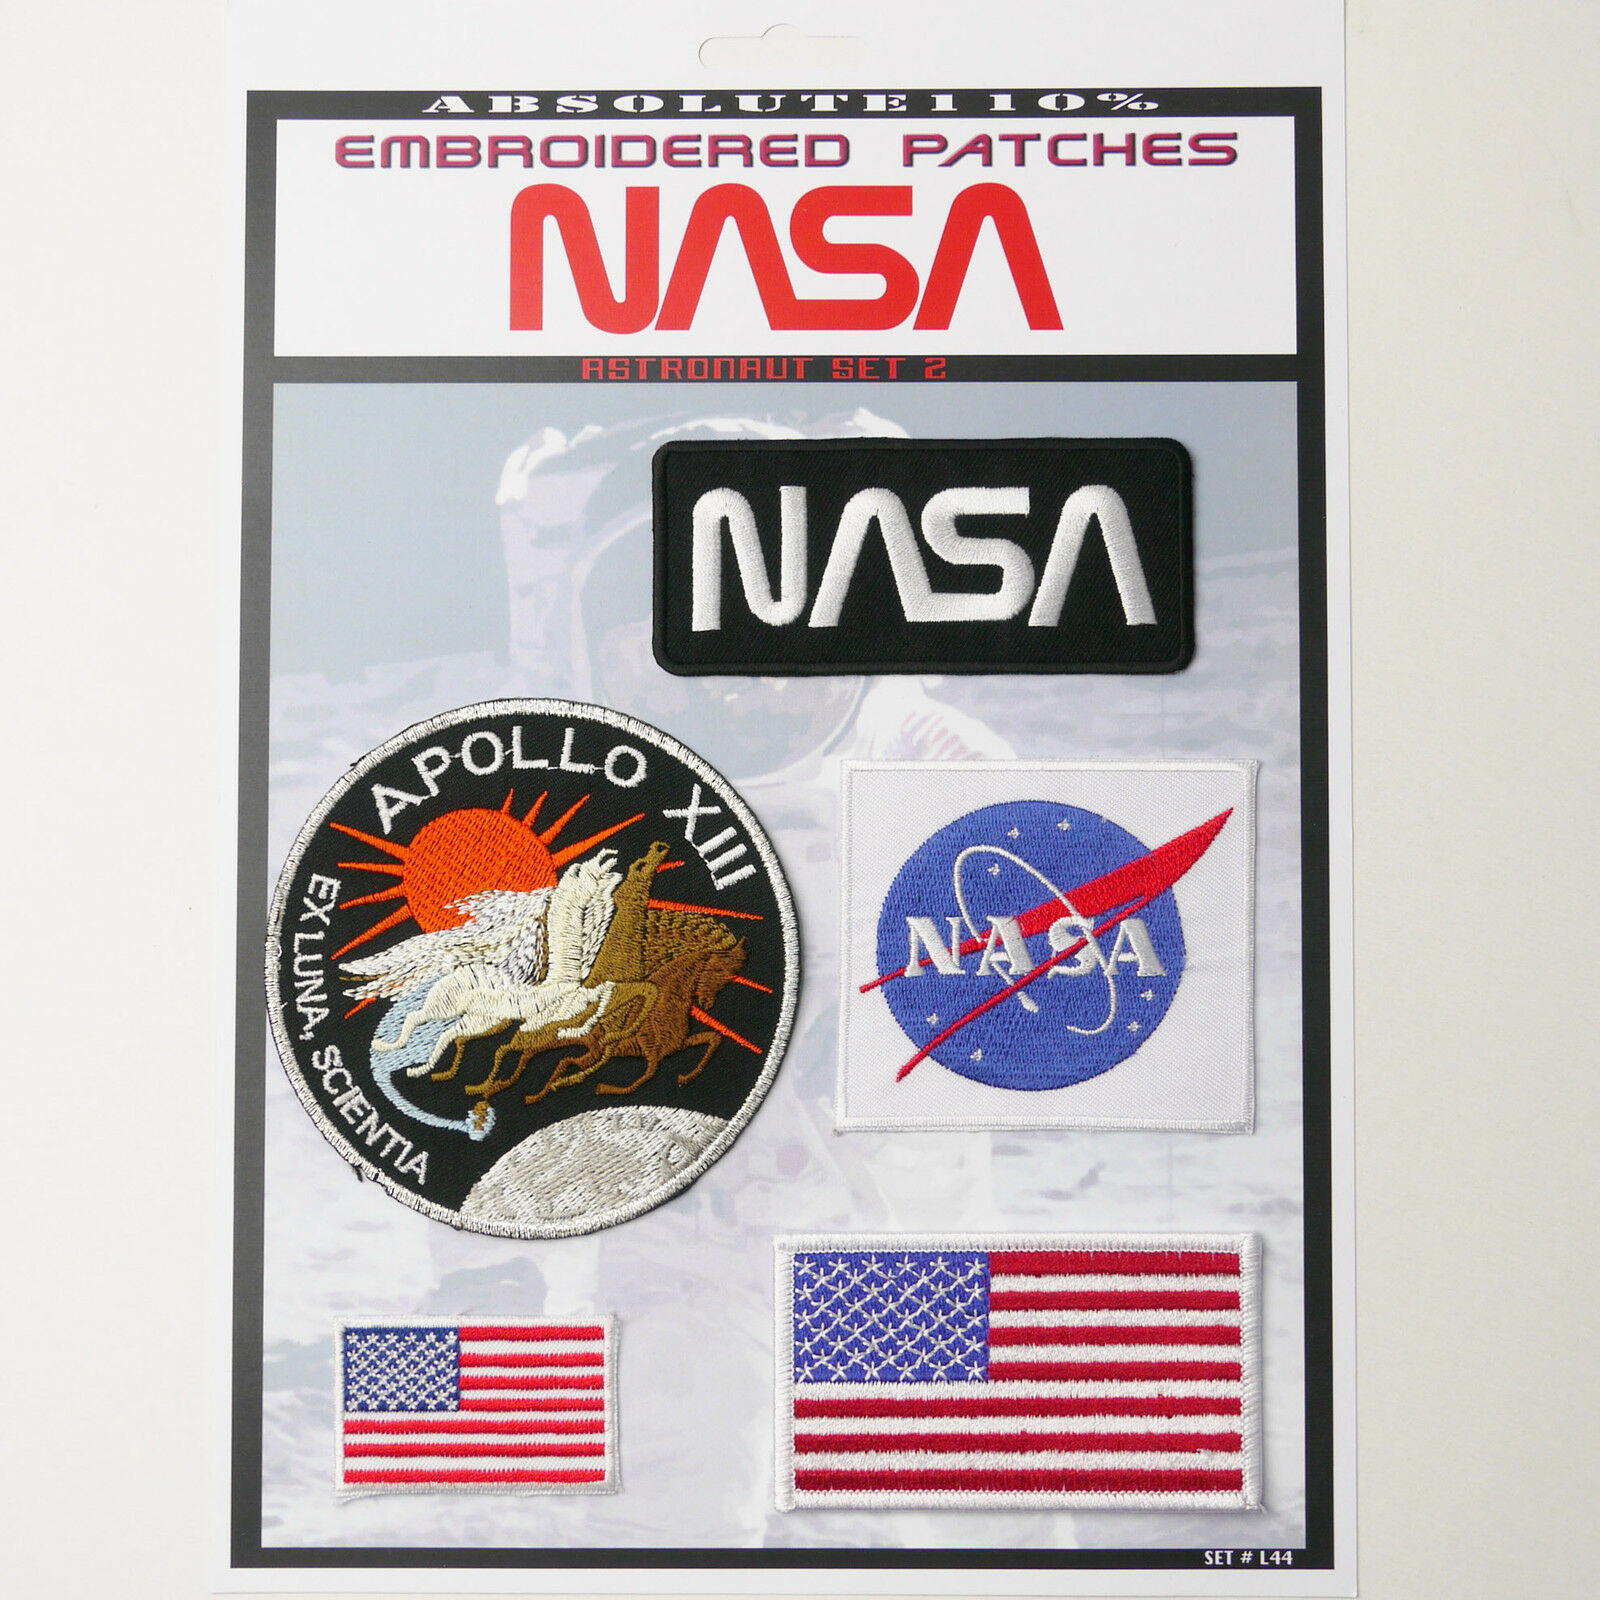 nasa patches on sleeve - photo #25